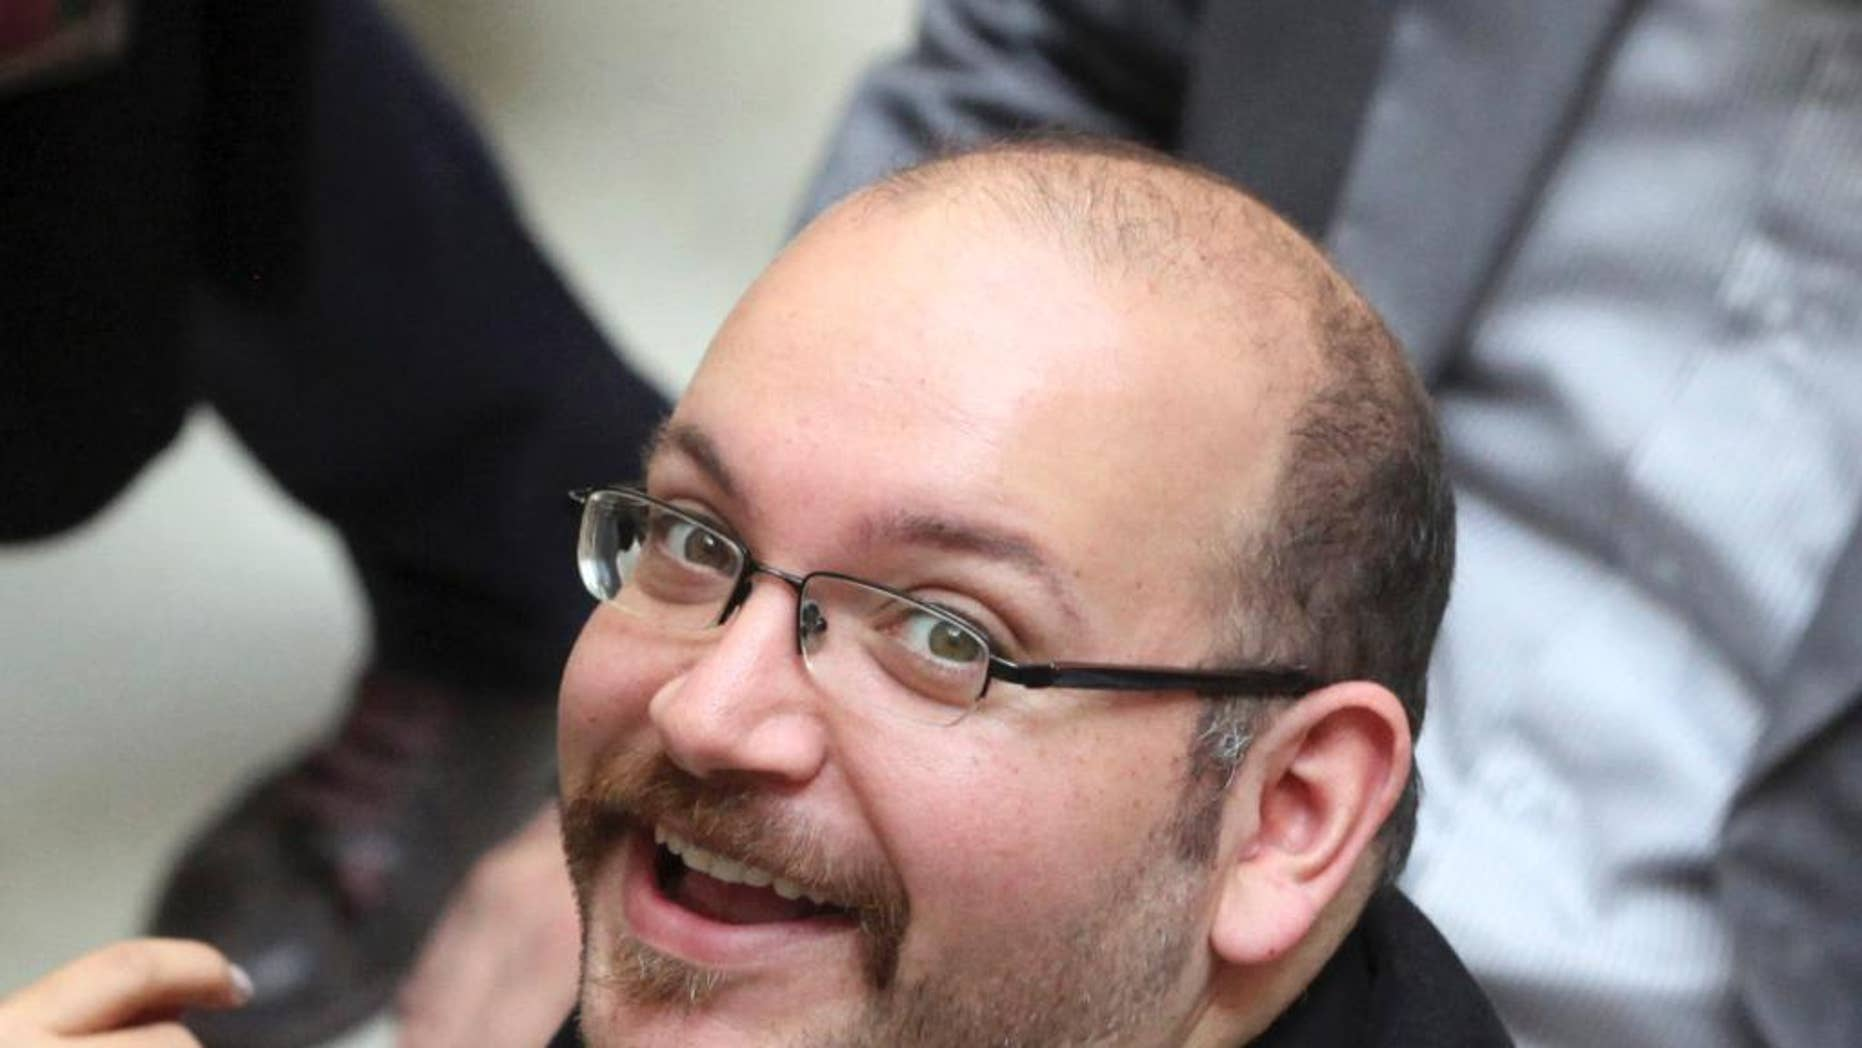 FILE - In this photo April 11, 2013 file photo, Jason Rezaian, an Iranian-American correspondent for the Washington Post, smiles as he attends a presidential campaign of President Hassan Rouhani in Tehran, Iran. The brother of the detained Washington Post correspondent said Wednesday, Feb. 18, 2015 that a new lawyer chosen by the family has been unable to meet with the Iranian-American journalist to complete formalities that would allow him to represent him.(AP Photo/Vahid Salemi, File)